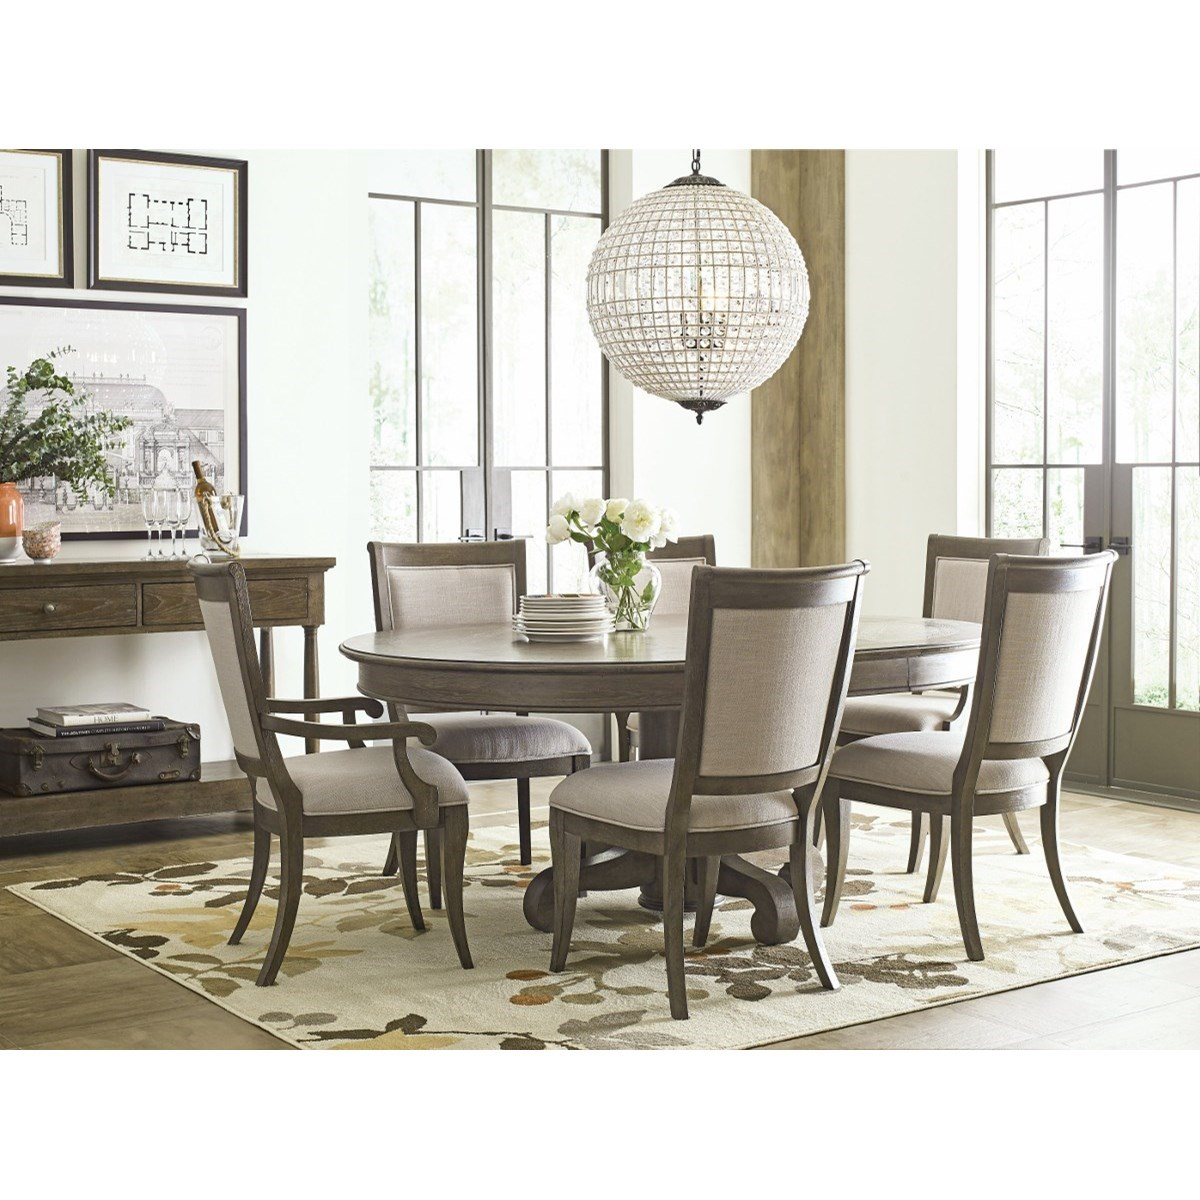 Anson Formal Dining Group by American Drew at Alison Craig Home Furnishings